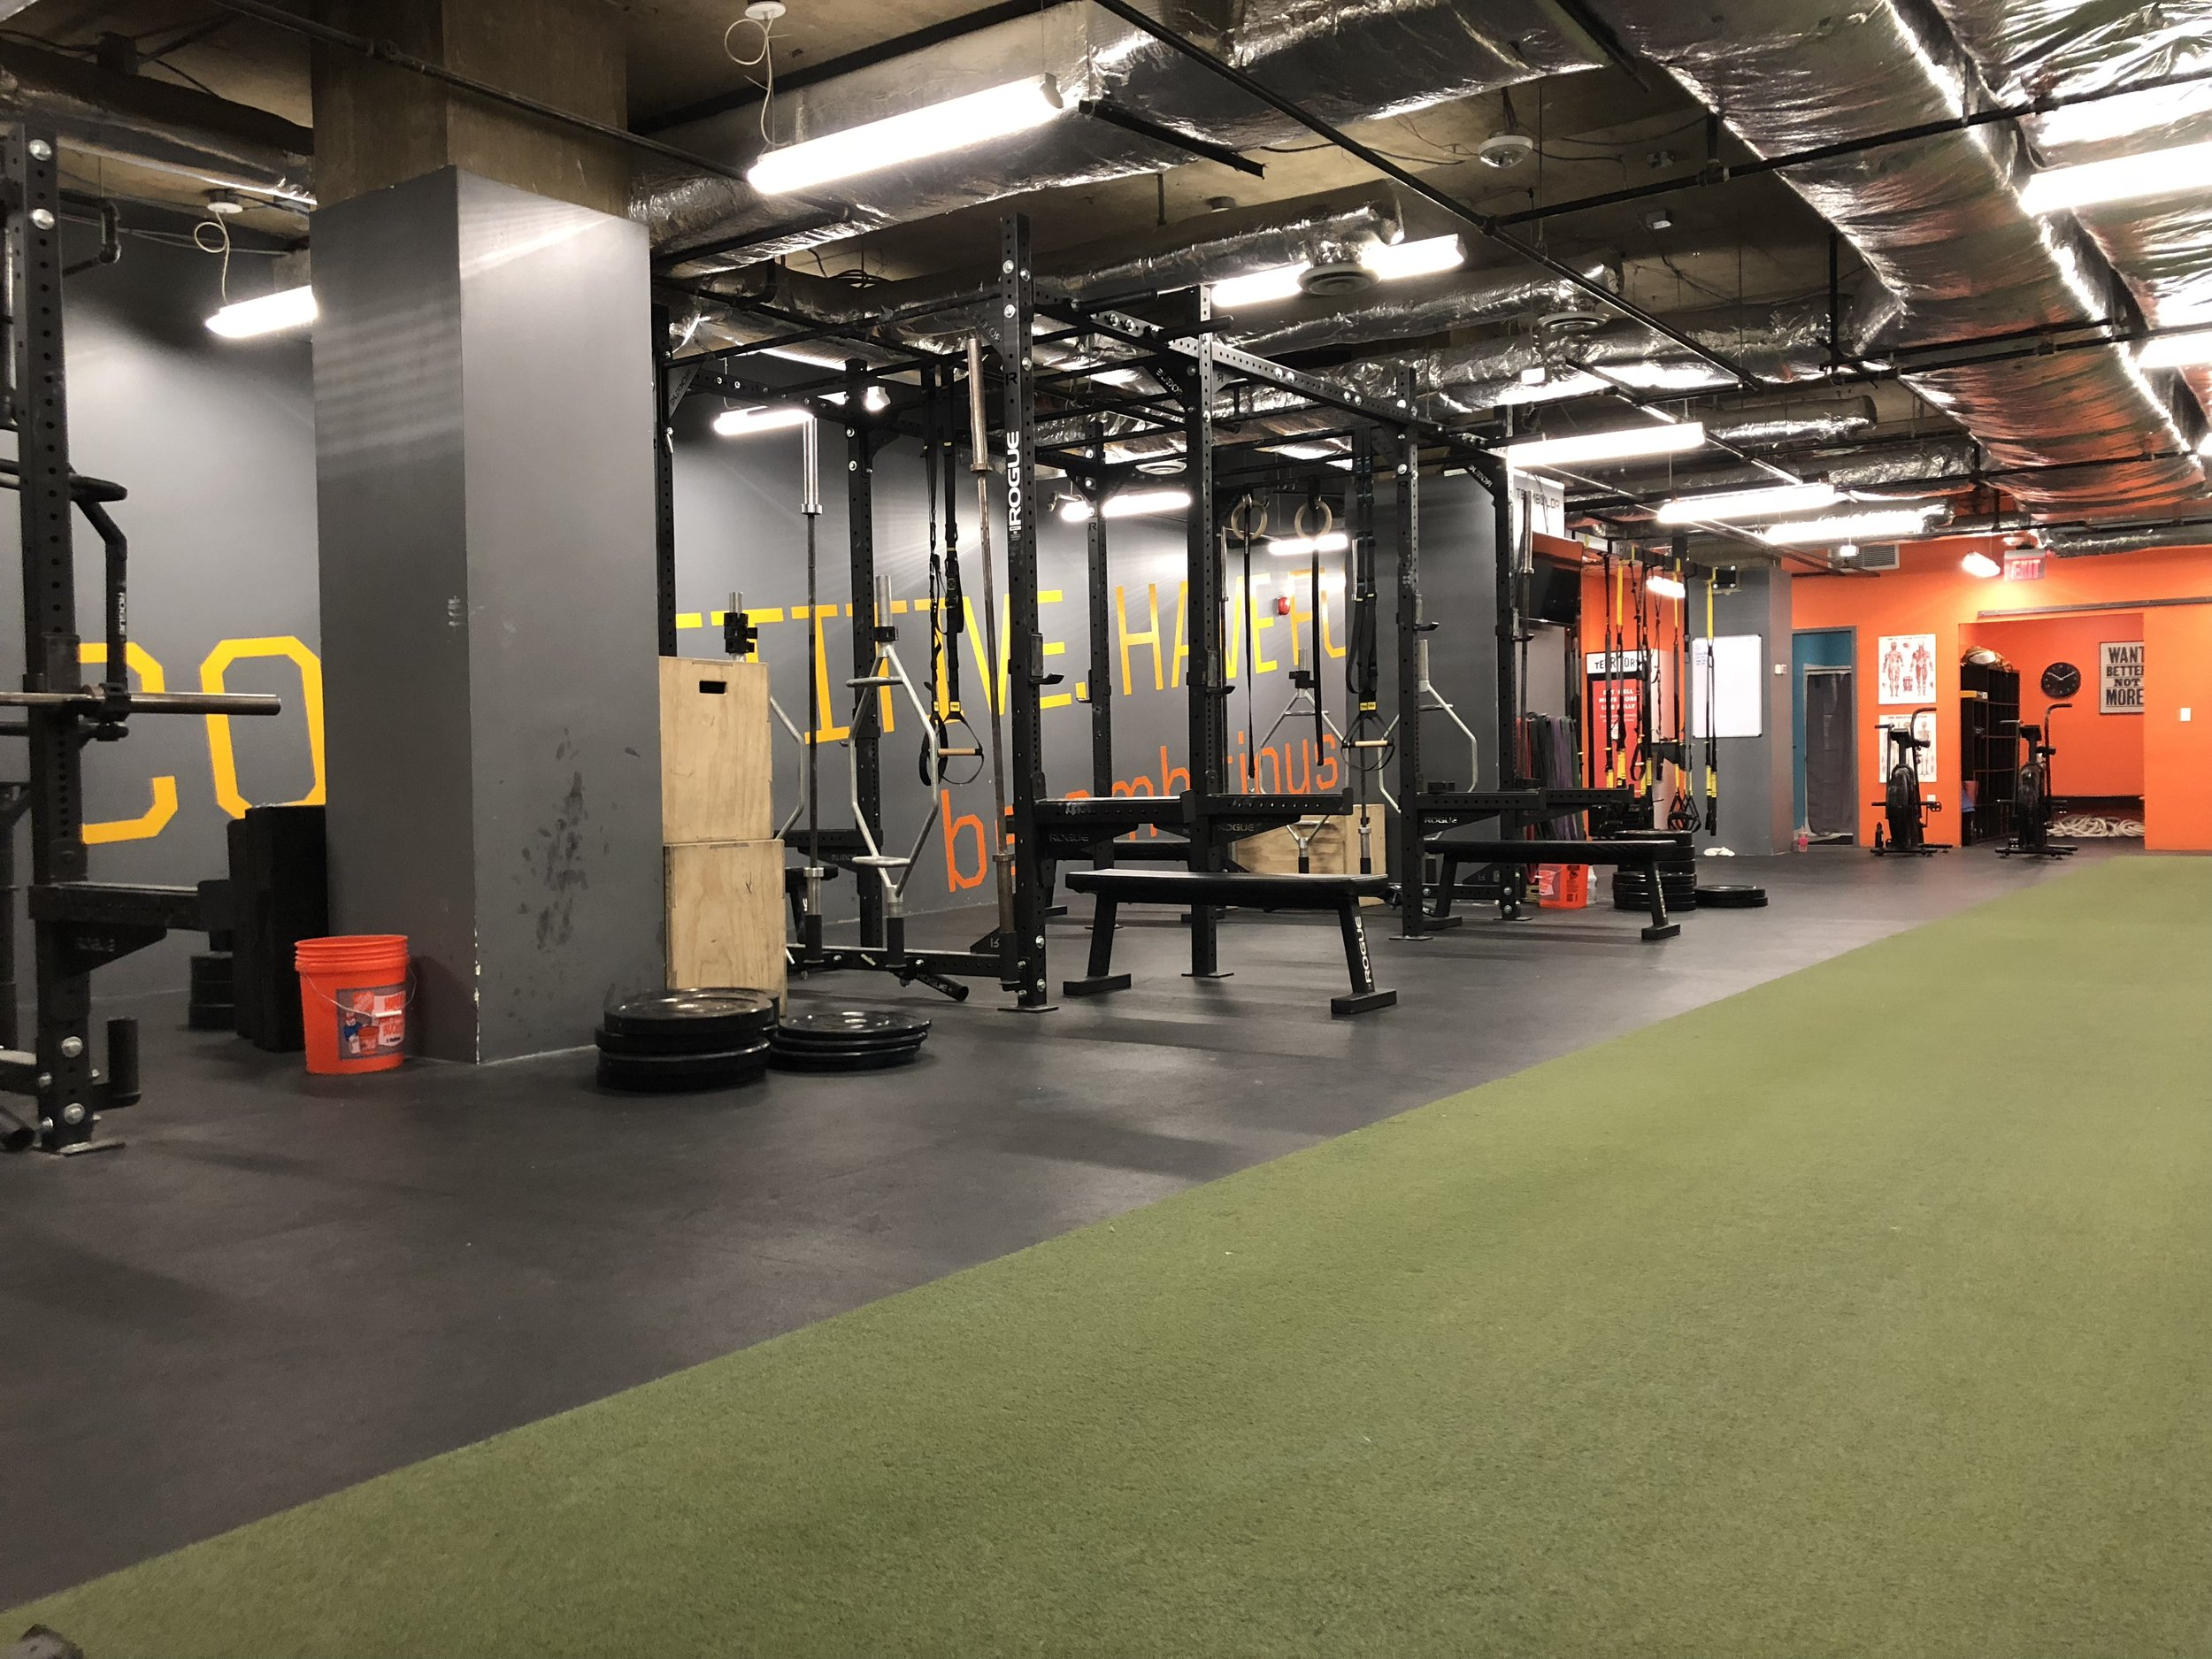 Where it is now. Ambitious Athletics training facility at 2021 K ST NW DC